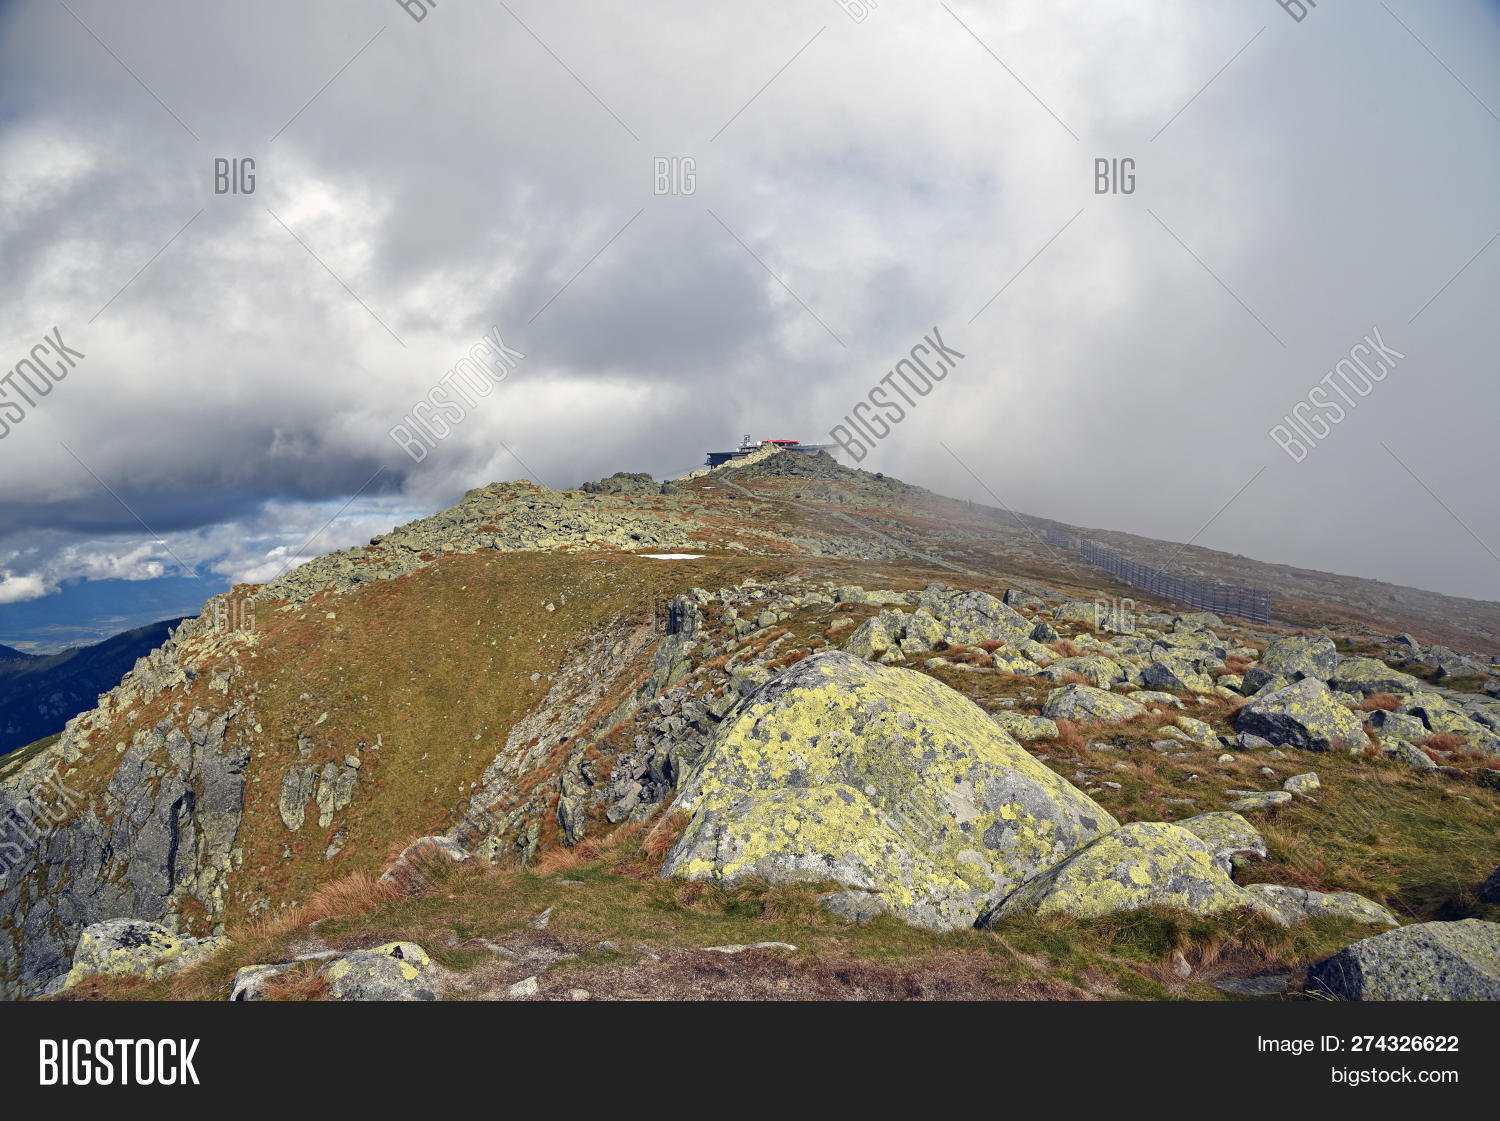 Chopok mountain peak with stones and meadow in Nizke Tatry mountains in Slovakia during autumn day with blue sky and clouds